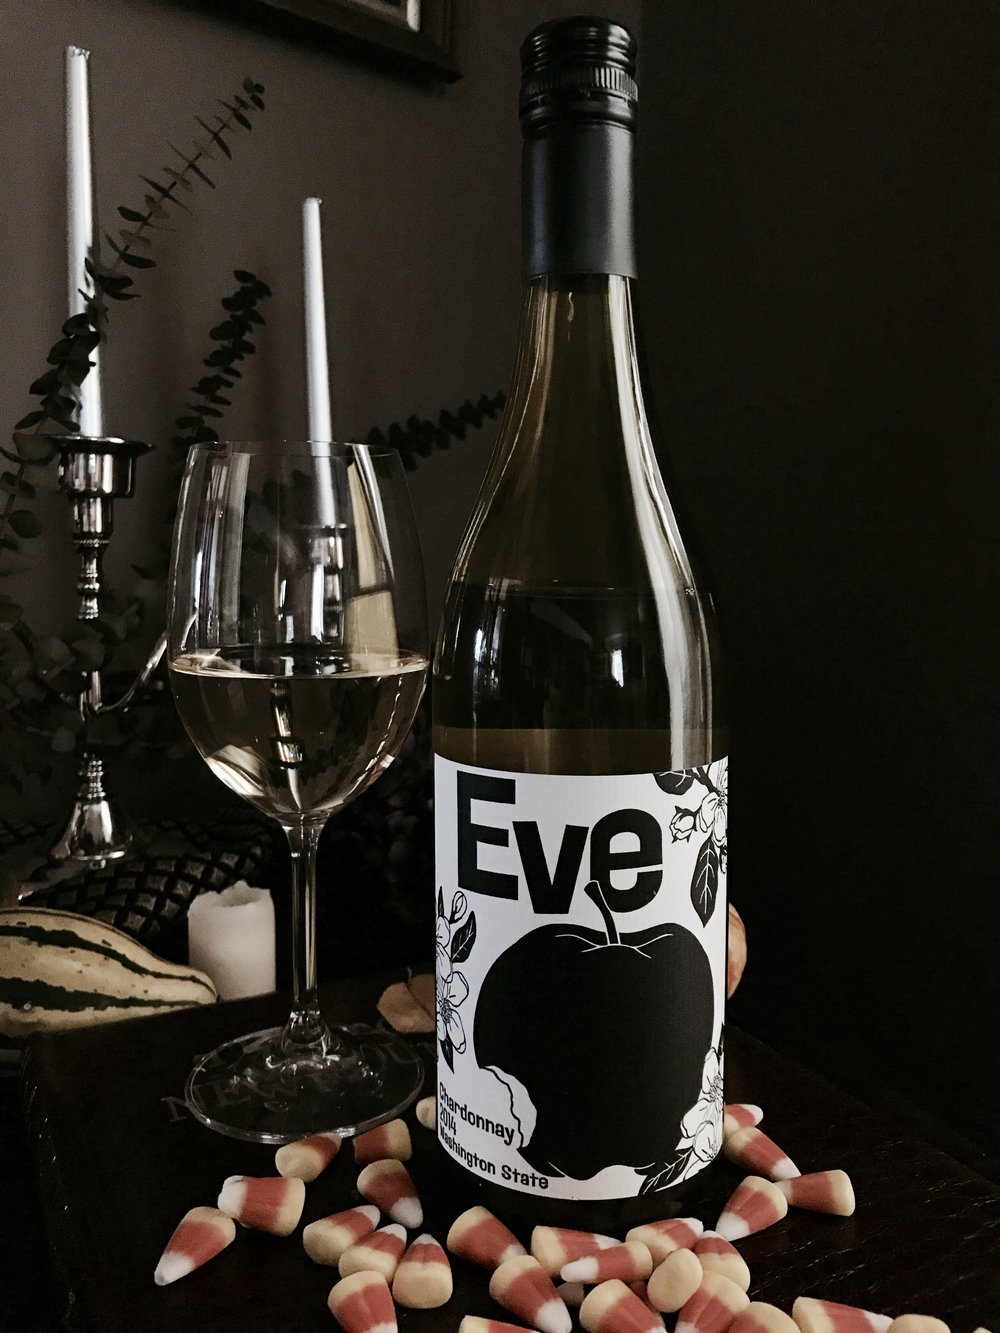 eve chardonnay 2014 wine halloween candy pairing candy corn